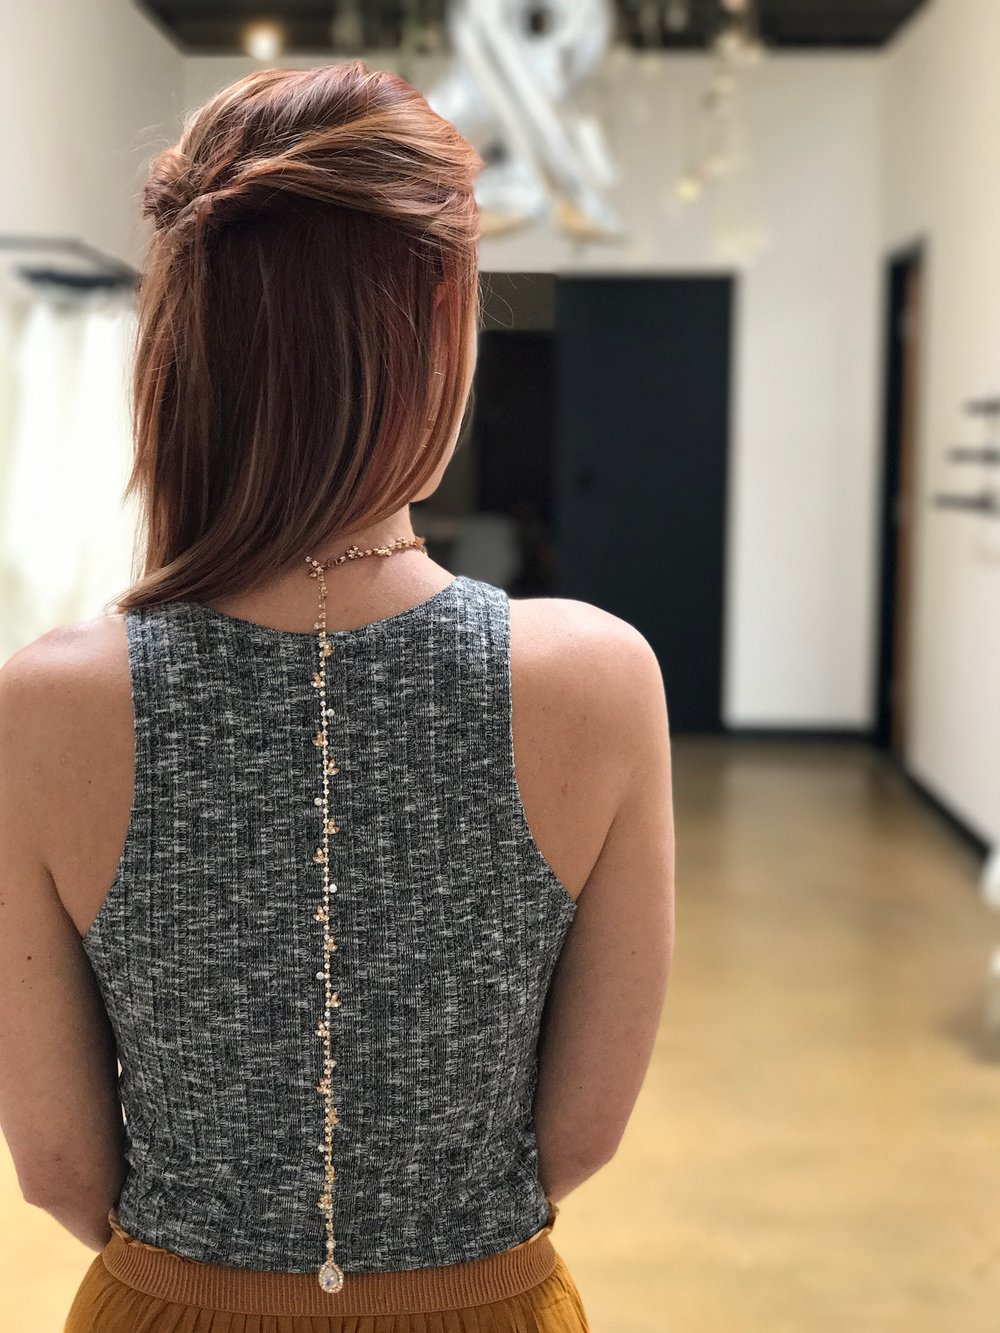 Necklace by  Untamed Petals  to perfect a low back bridesmaid look